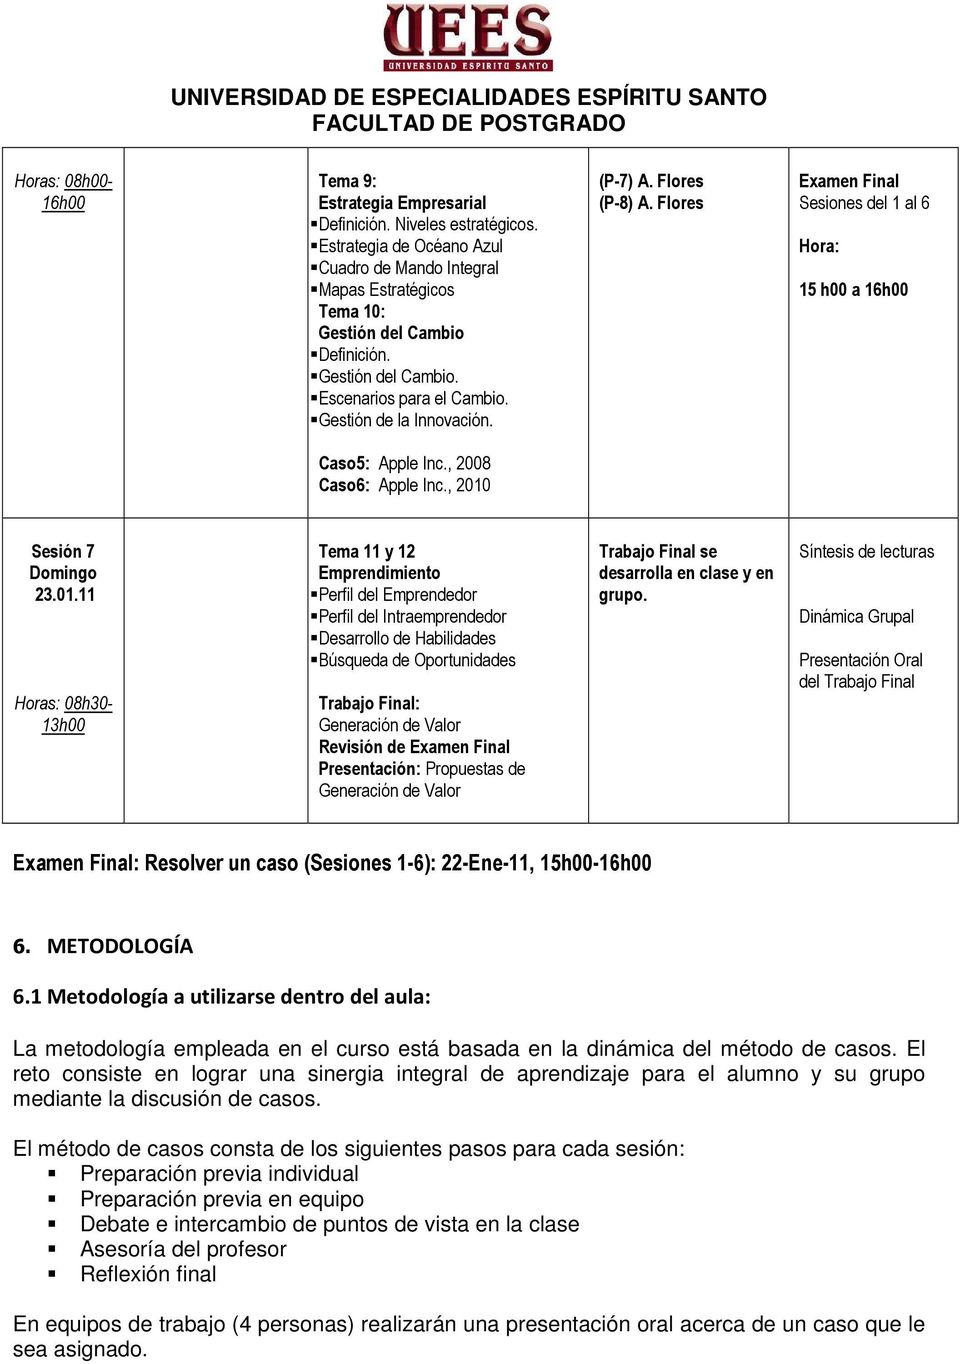 Flores (P-8) A. Flores Examen Final Sesiones del 1 al 6 Hora: 15 h00 a 16h00 Caso5: Apple Inc., 2008 Caso6: Apple Inc., 2010